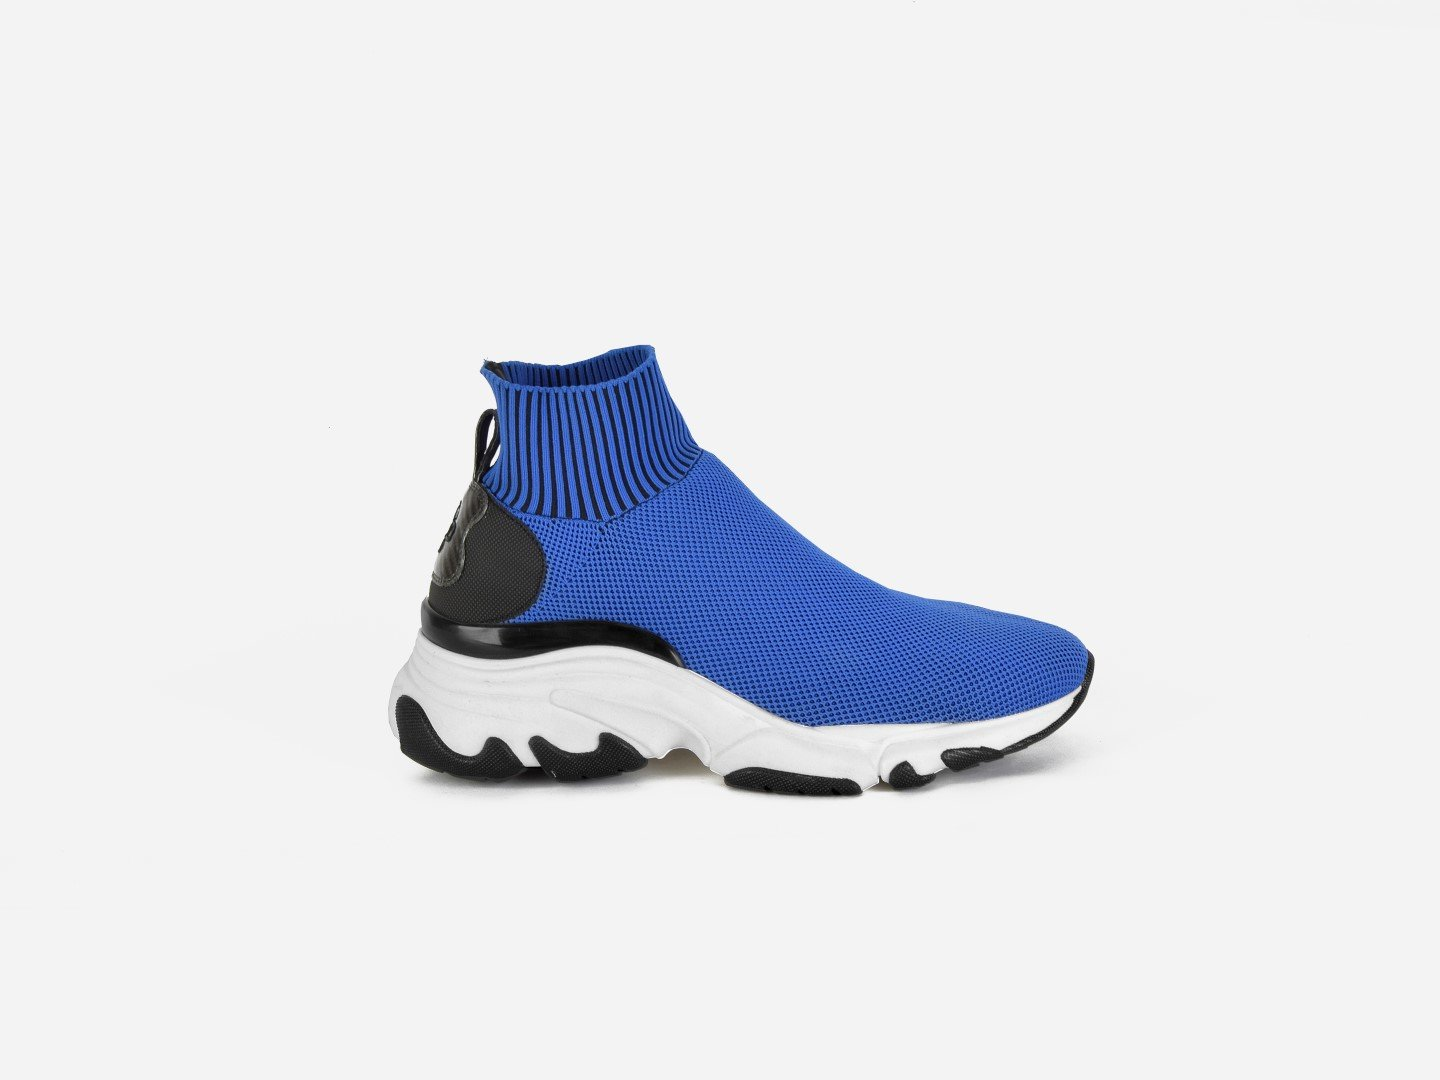 pregis ryder blue sock oversized runner sneaker made in Portugal